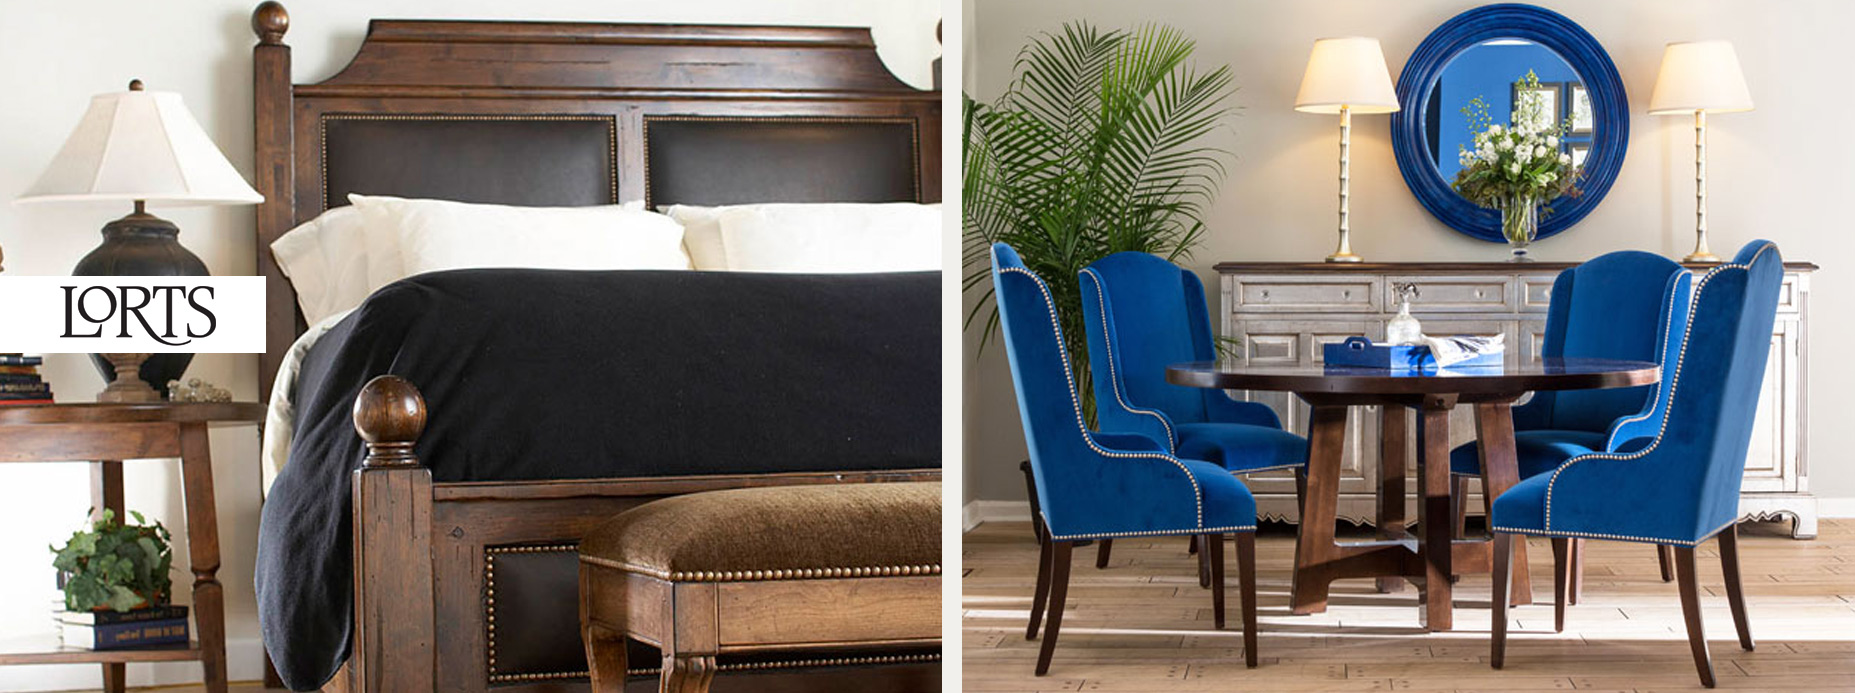 Lorts Furniture At Hickory Park Furniture Galleries